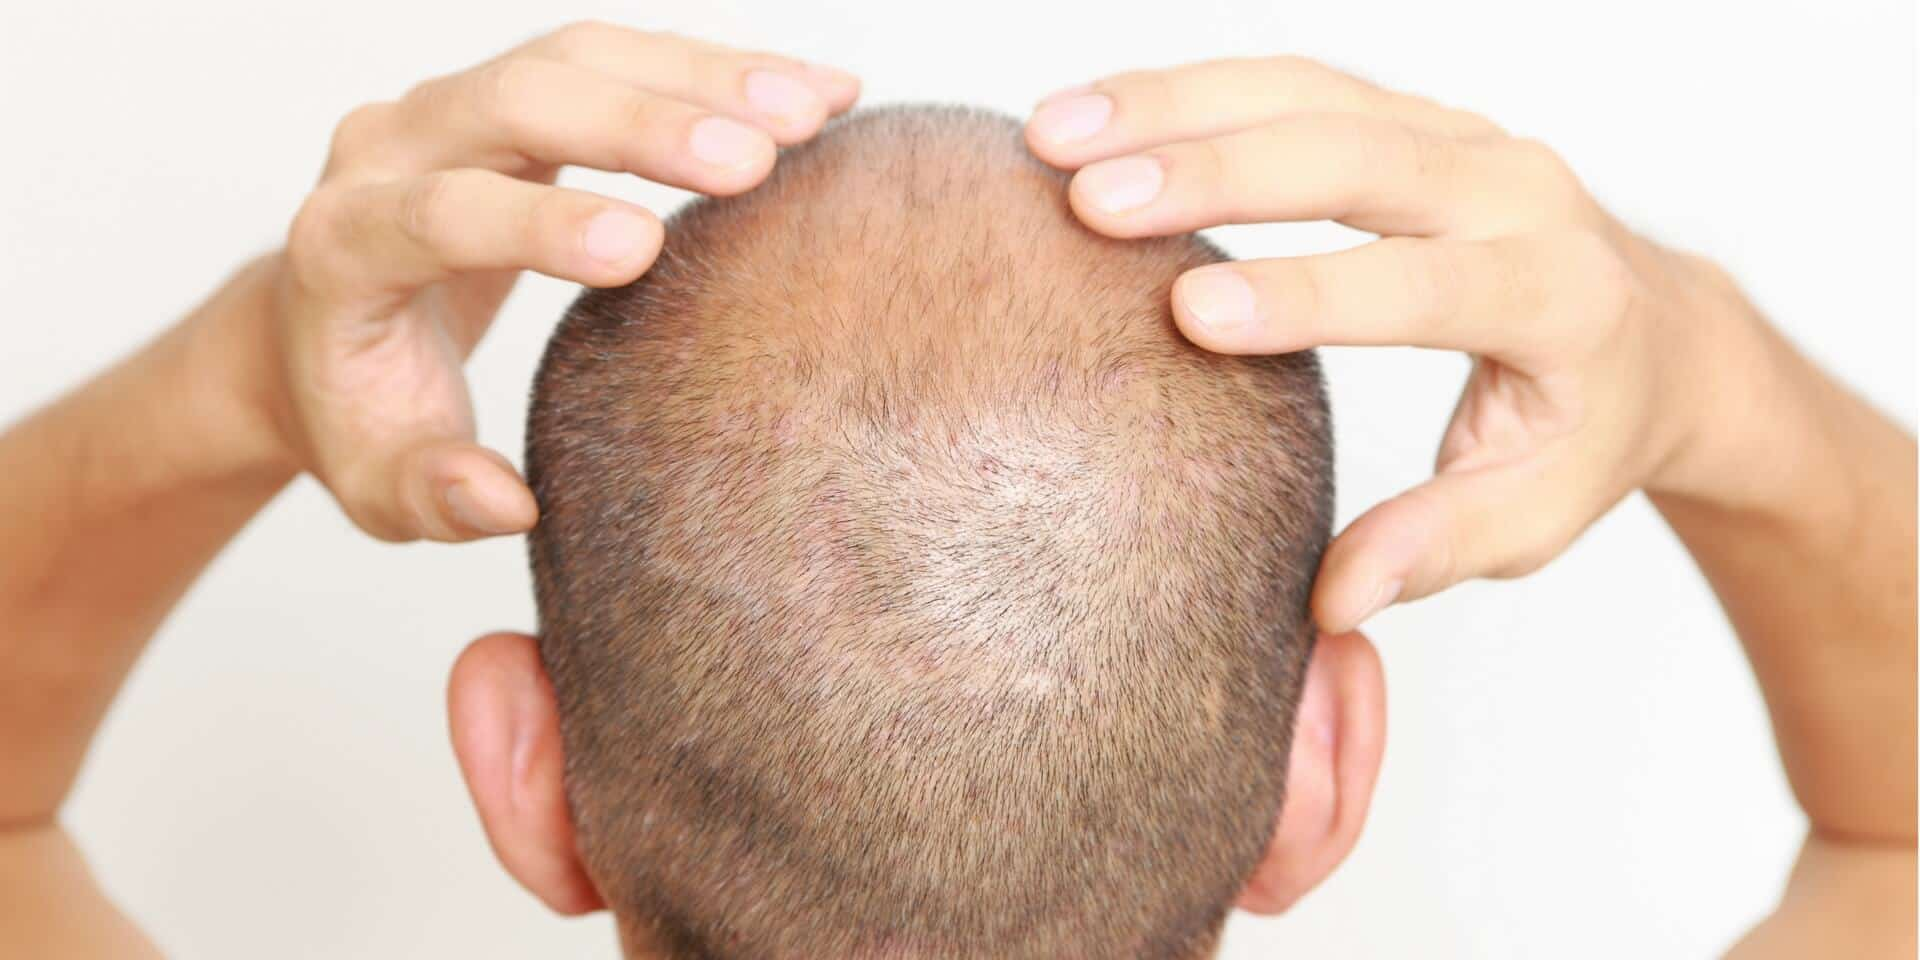 silica for hair growth - best silica supplements for hair growth